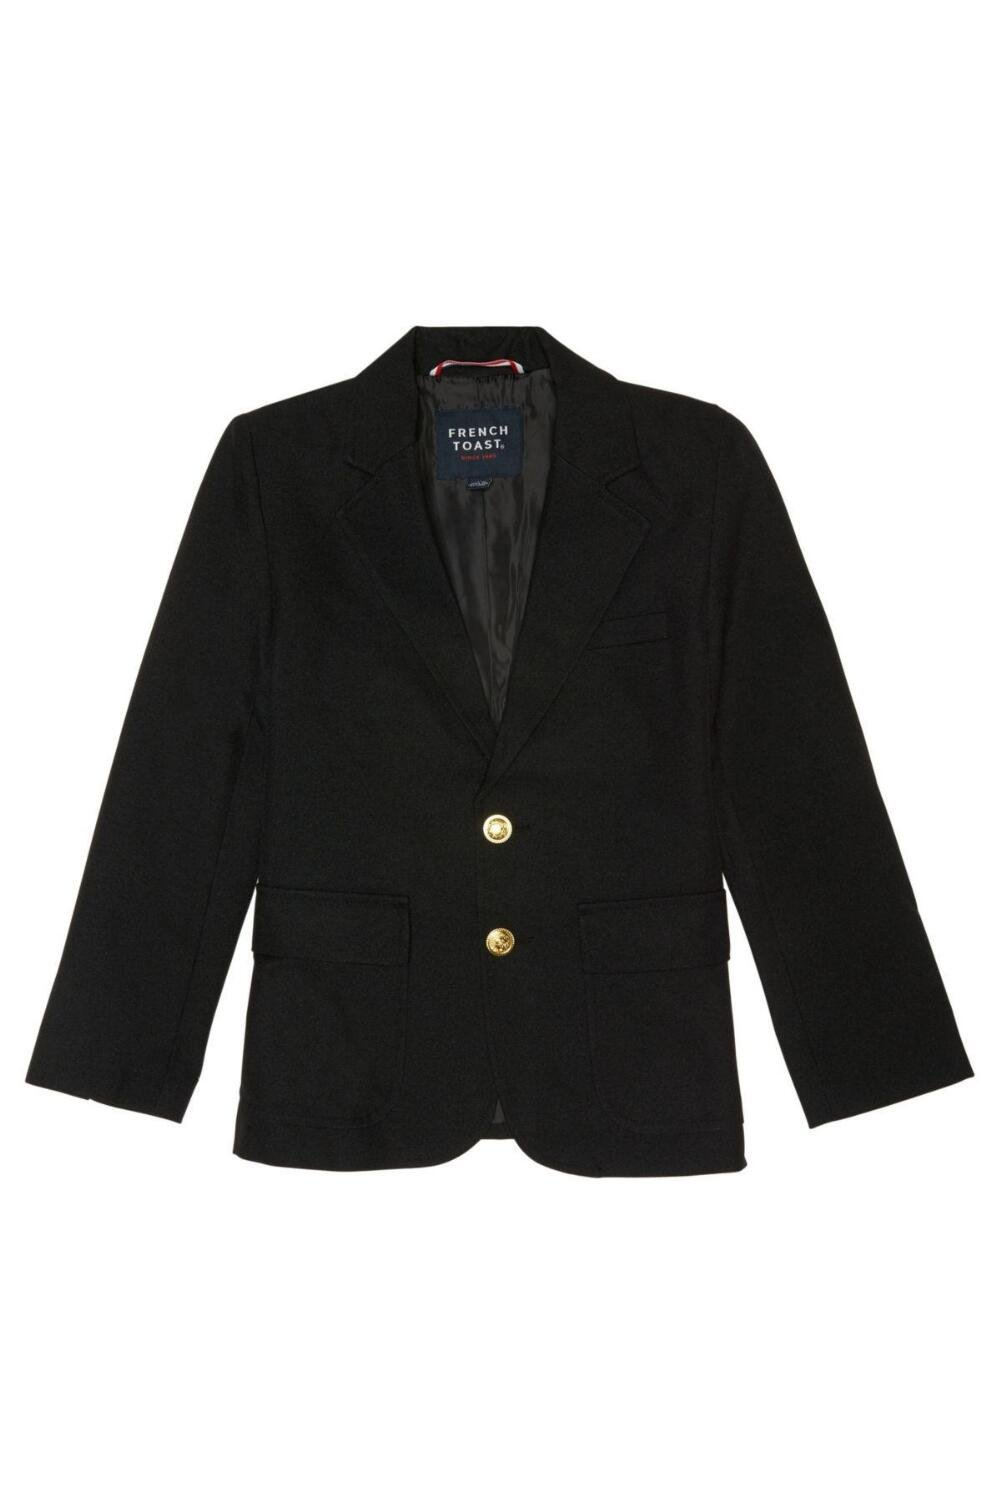 French Toast Big Boys' School Blazer, Black, 8 by French Toast (Image #1)